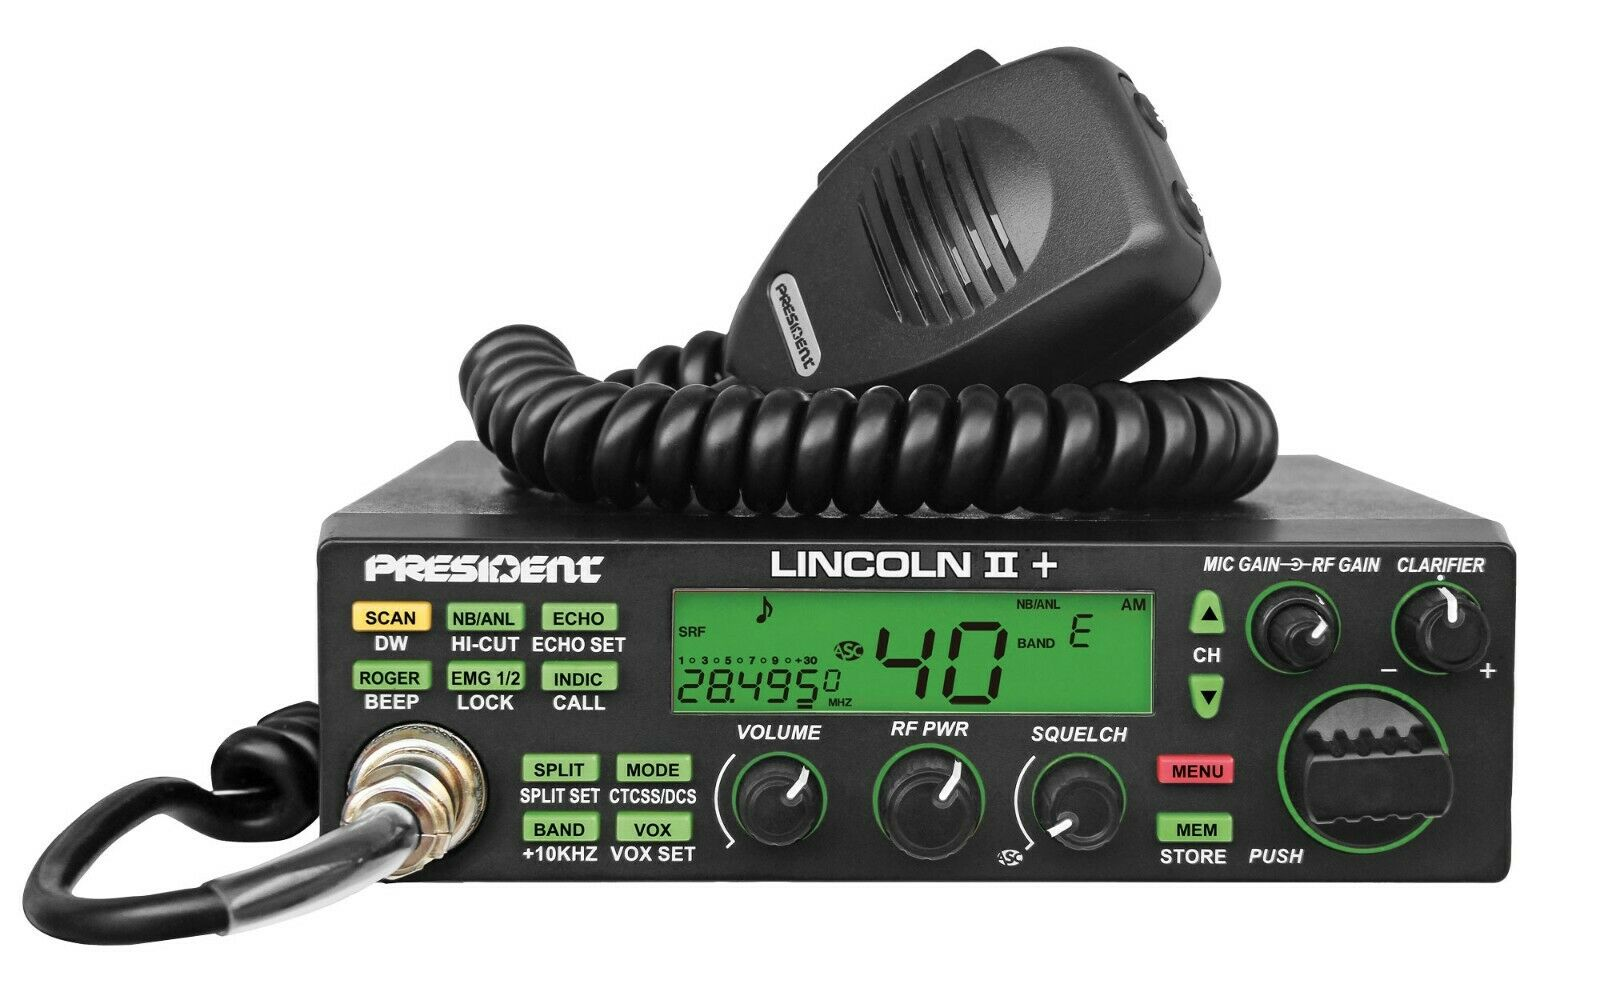 President Lincoln II+ V3 10 Meter Amateur Ham Mobile Radio AM/FM/SSB/LSB/USB/CW. Available Now for 245.00